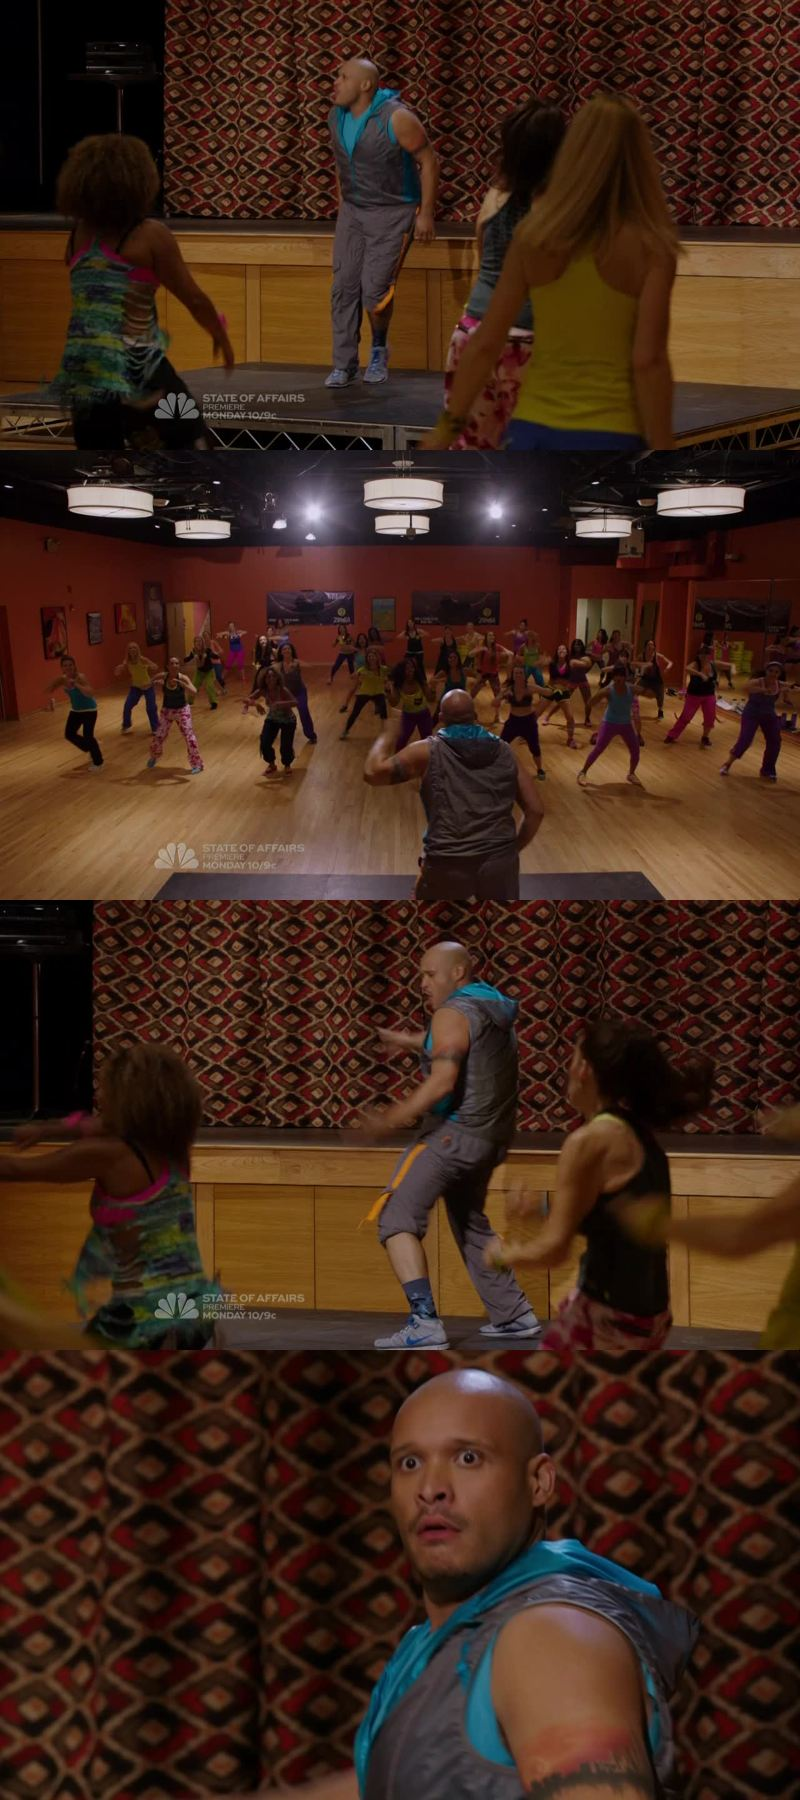 I was laughing so hard for that zumba class scene !! 😂😂😂 I wasn't expecting Cruz to be a zumba teacher !   Let's begin the three-part crossover even though I don't watch Law & Order ! Finding out that Erin had got a brother was surprinsing, but knowing he's one the victims is even more surprising. Sounds promising !